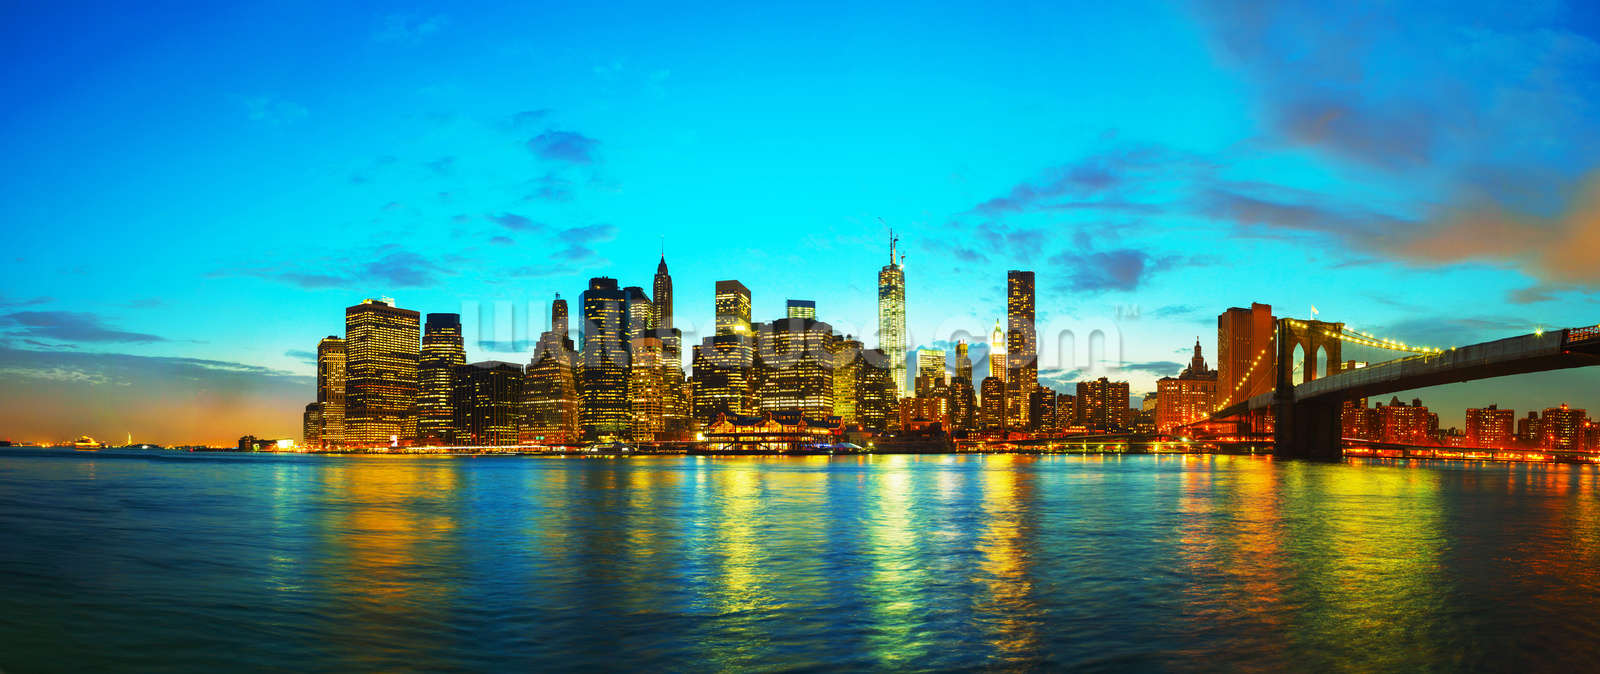 New york cityscape at sunset wallpaper wall mural wallsauce for Cityscape wall mural